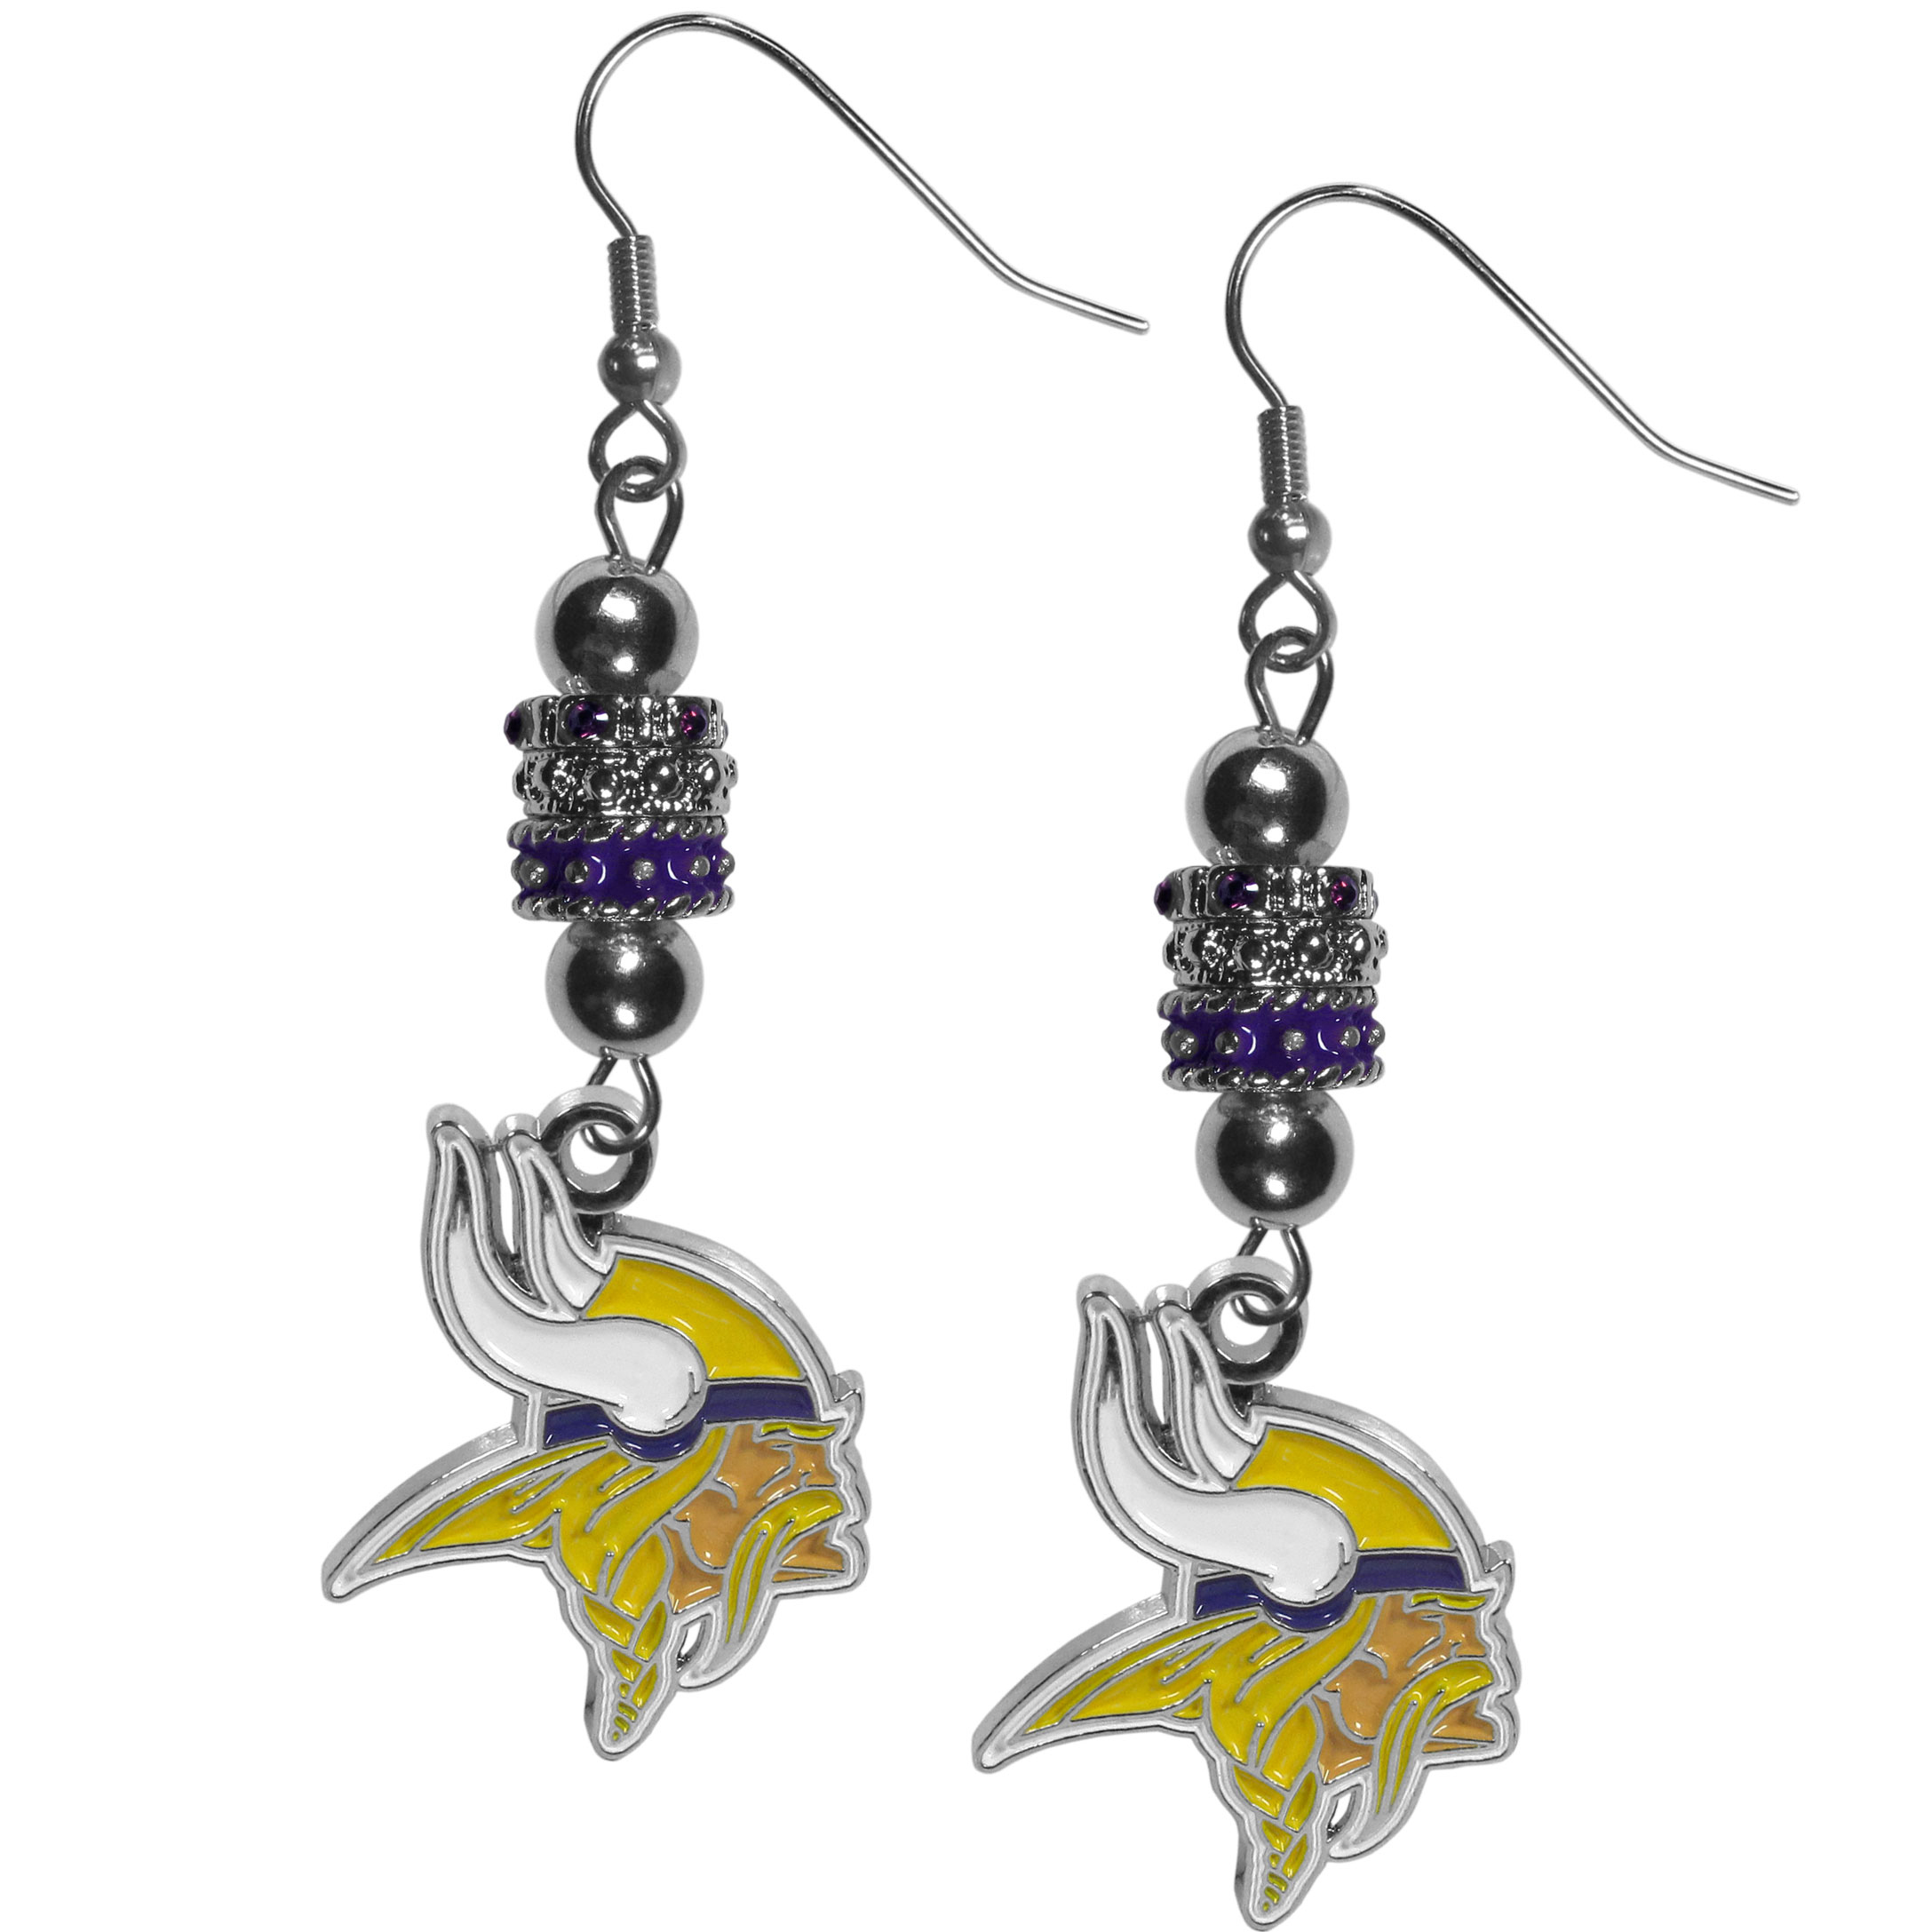 Minnesota Vikings Euro Bead Earrings - These beautiful euro style earrings feature 3 euro beads and a detailed Minnesota Vikings charm on hypoallergenic fishhook posts.